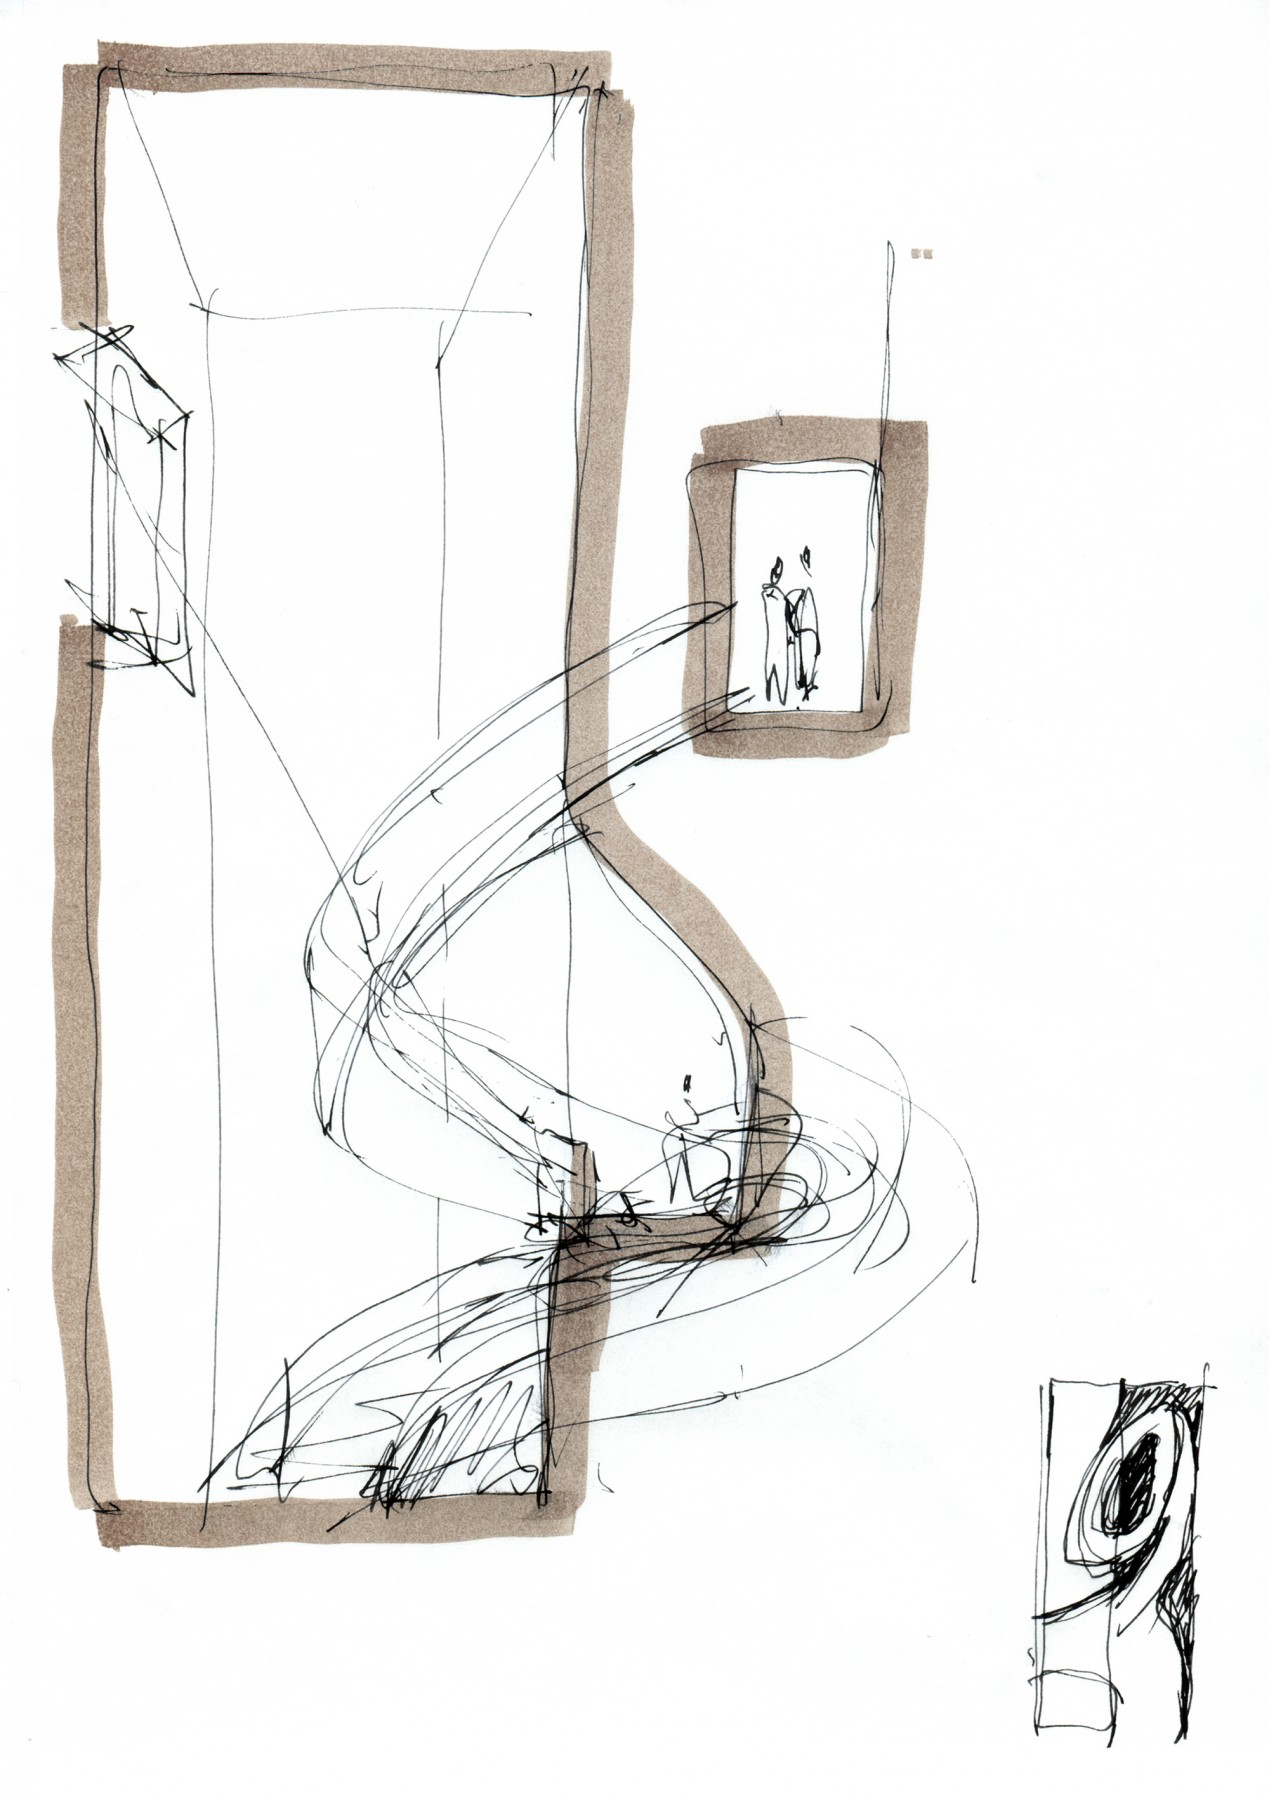 Victoria-and-Albert-Museum-V&A-competition-Exhibition-Road-gallery-London-Sir-Aston-Webb-design-short-list-Jamie-Fobert-architects-sketch-3